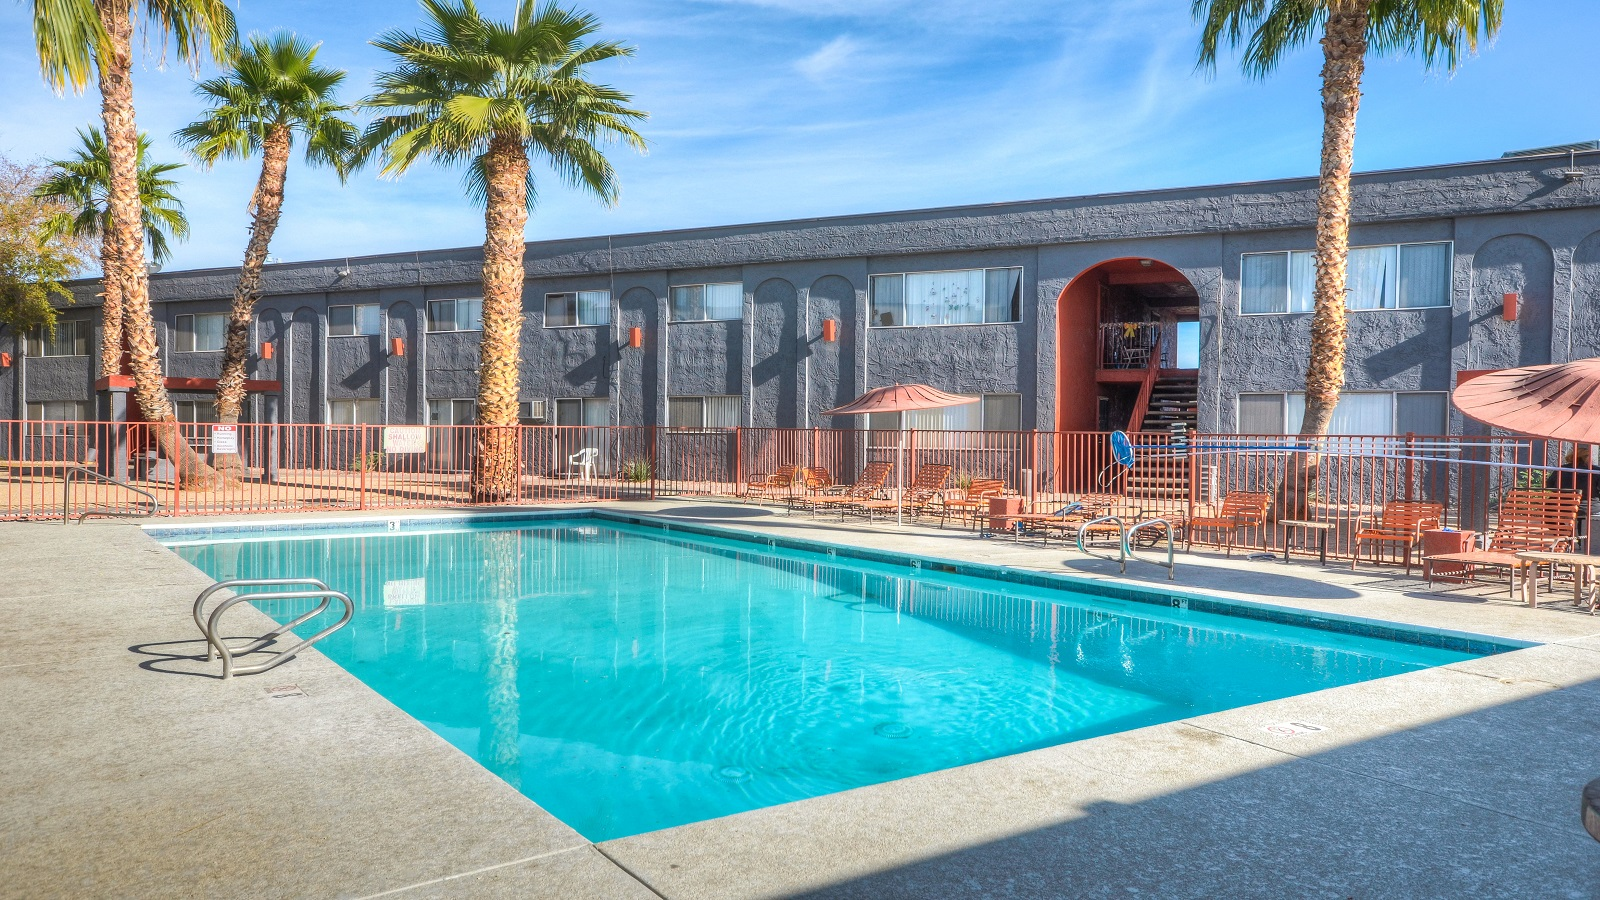 Eclipse Apartments | 2461 West Butler Drive, Phoenix, AZ 85051 | 75 Units | Built in 1972 | $4,875,000 | $65,000 Per Unit | $81.25 Per SF